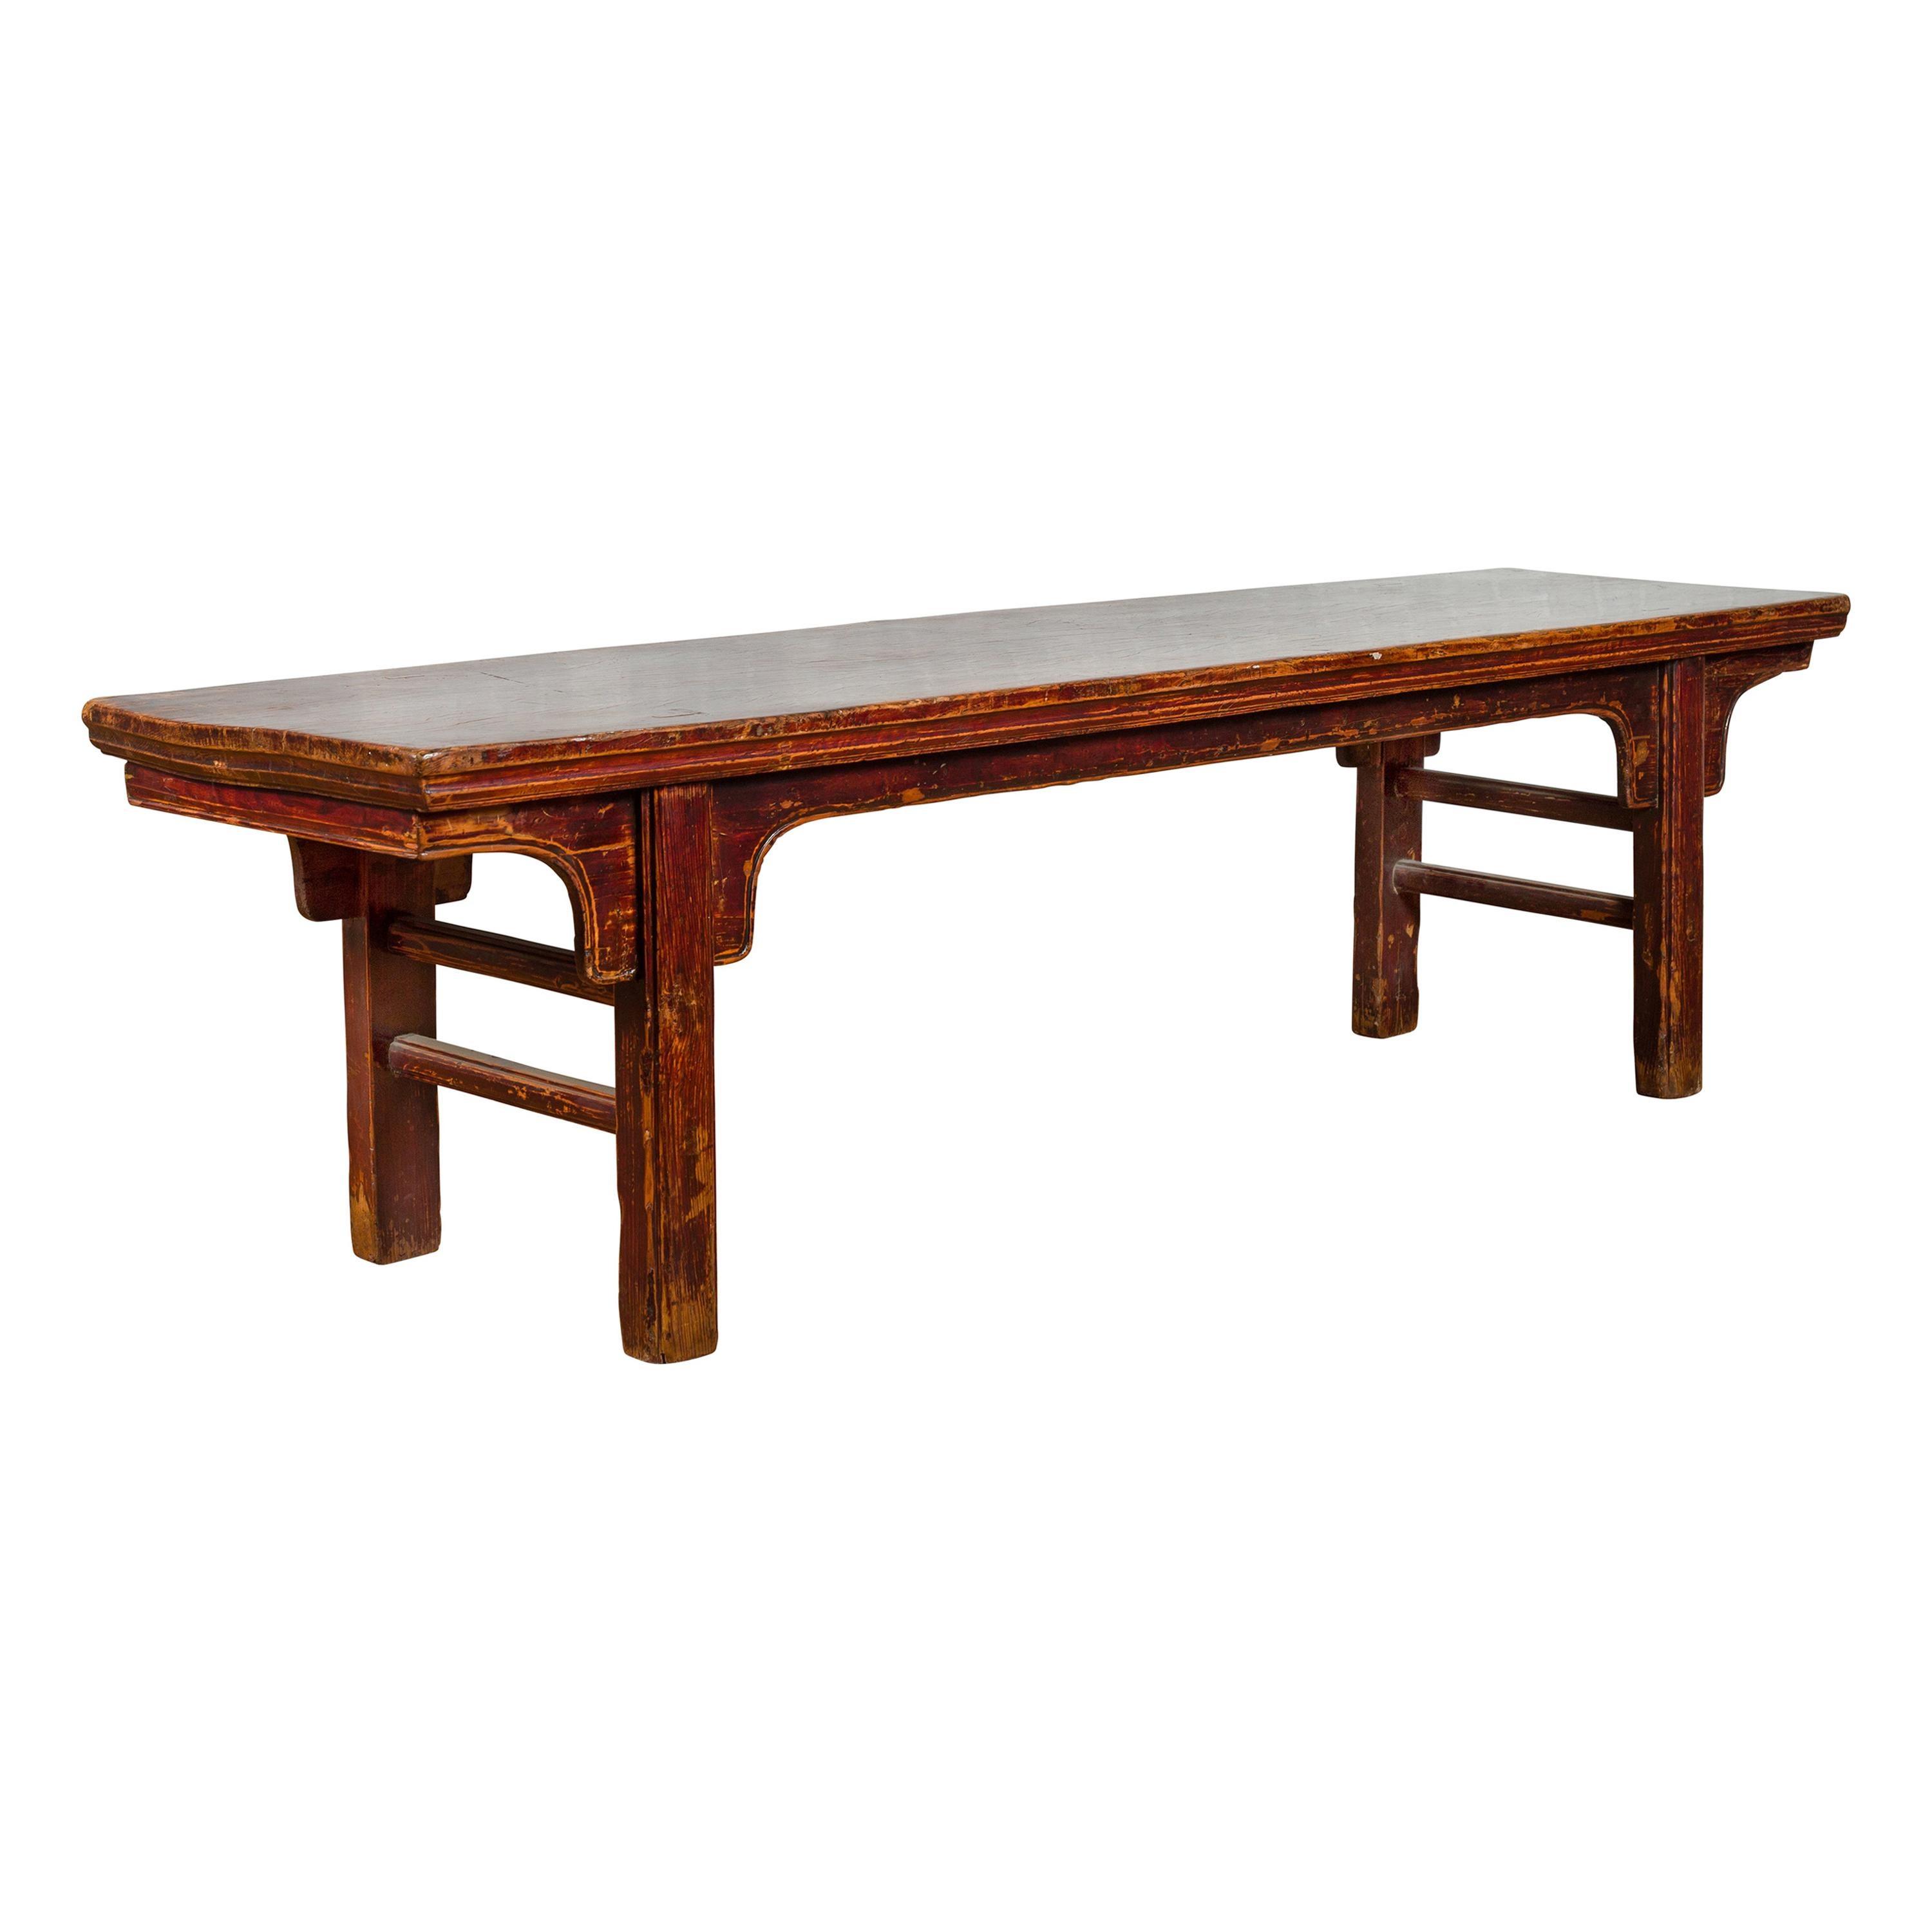 Chinese 19th Century Qing Dynasty Coffee Table with Distressed Patina